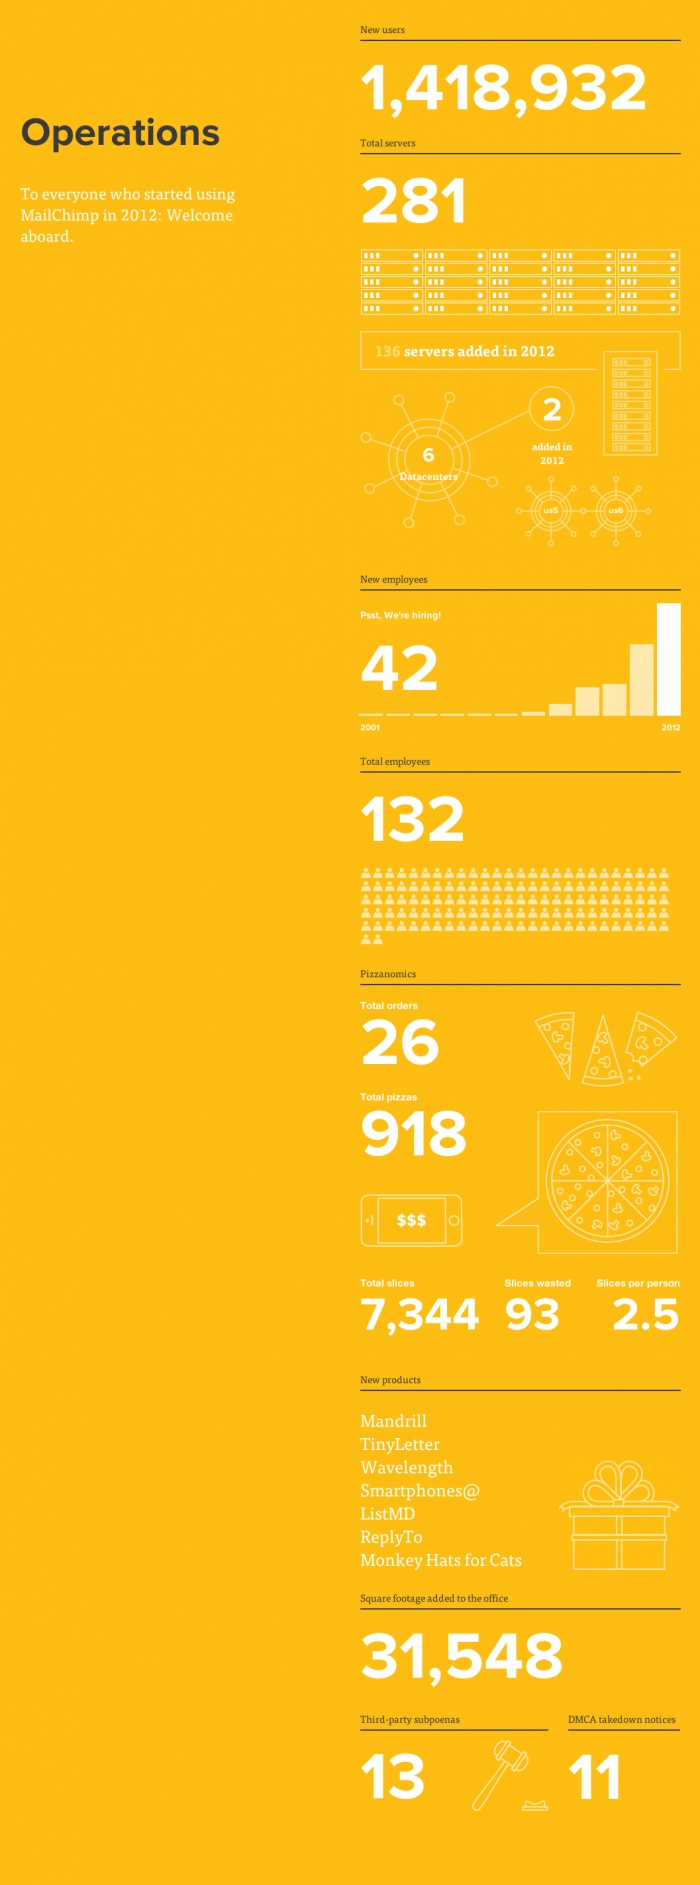 Mail Chimp Annual Report graphics